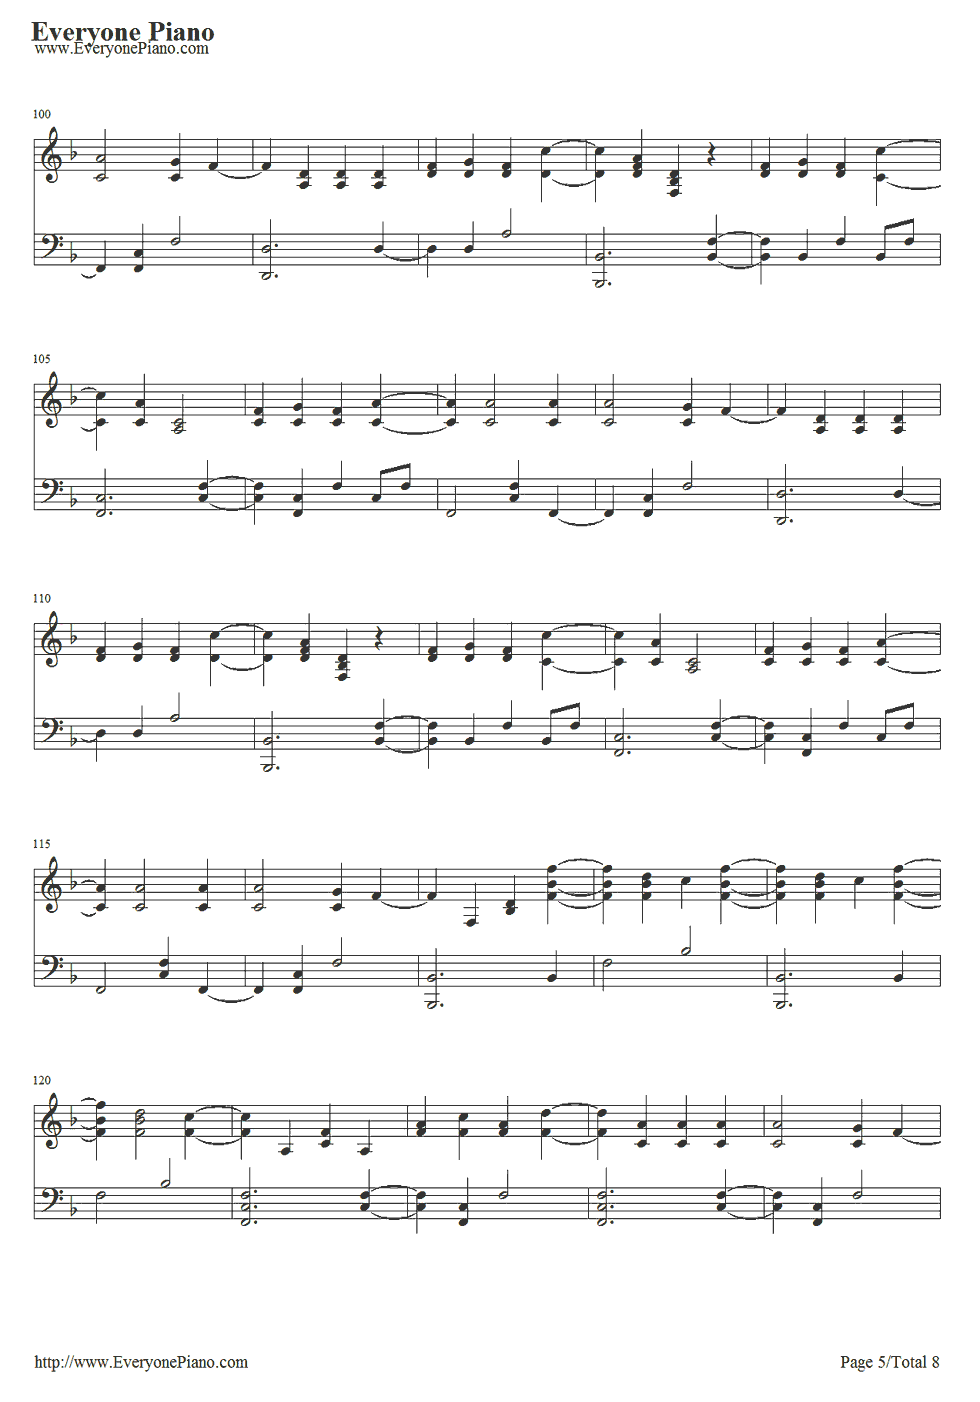 Coldplay the scientist piano sheet music learn to play today the coldplay the scientist piano sheet music learn to play today the scientist coldplay stave preview hexwebz Choice Image